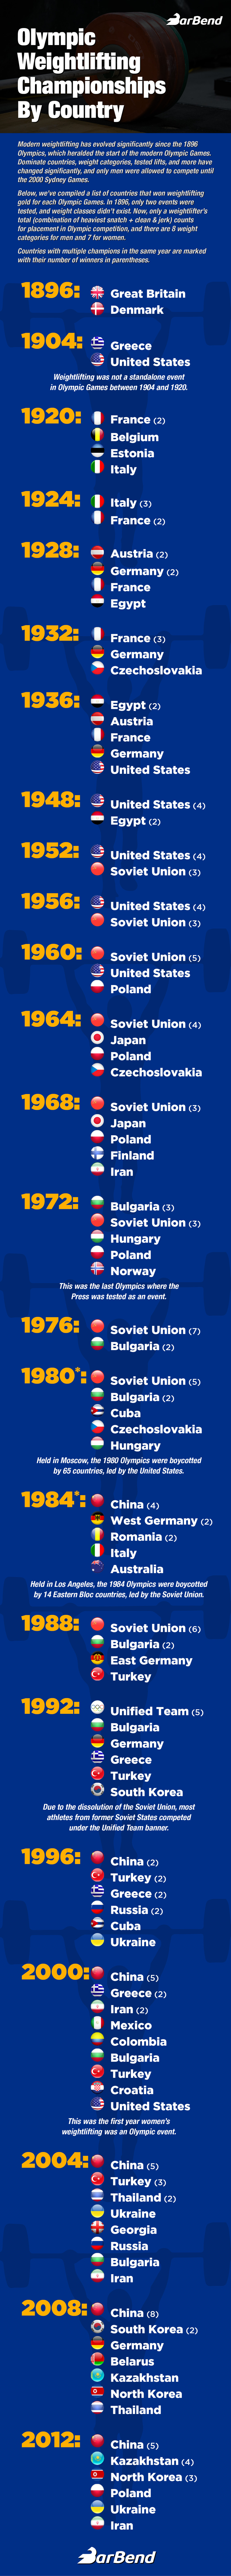 Olympic Weightlifting Championships by Country